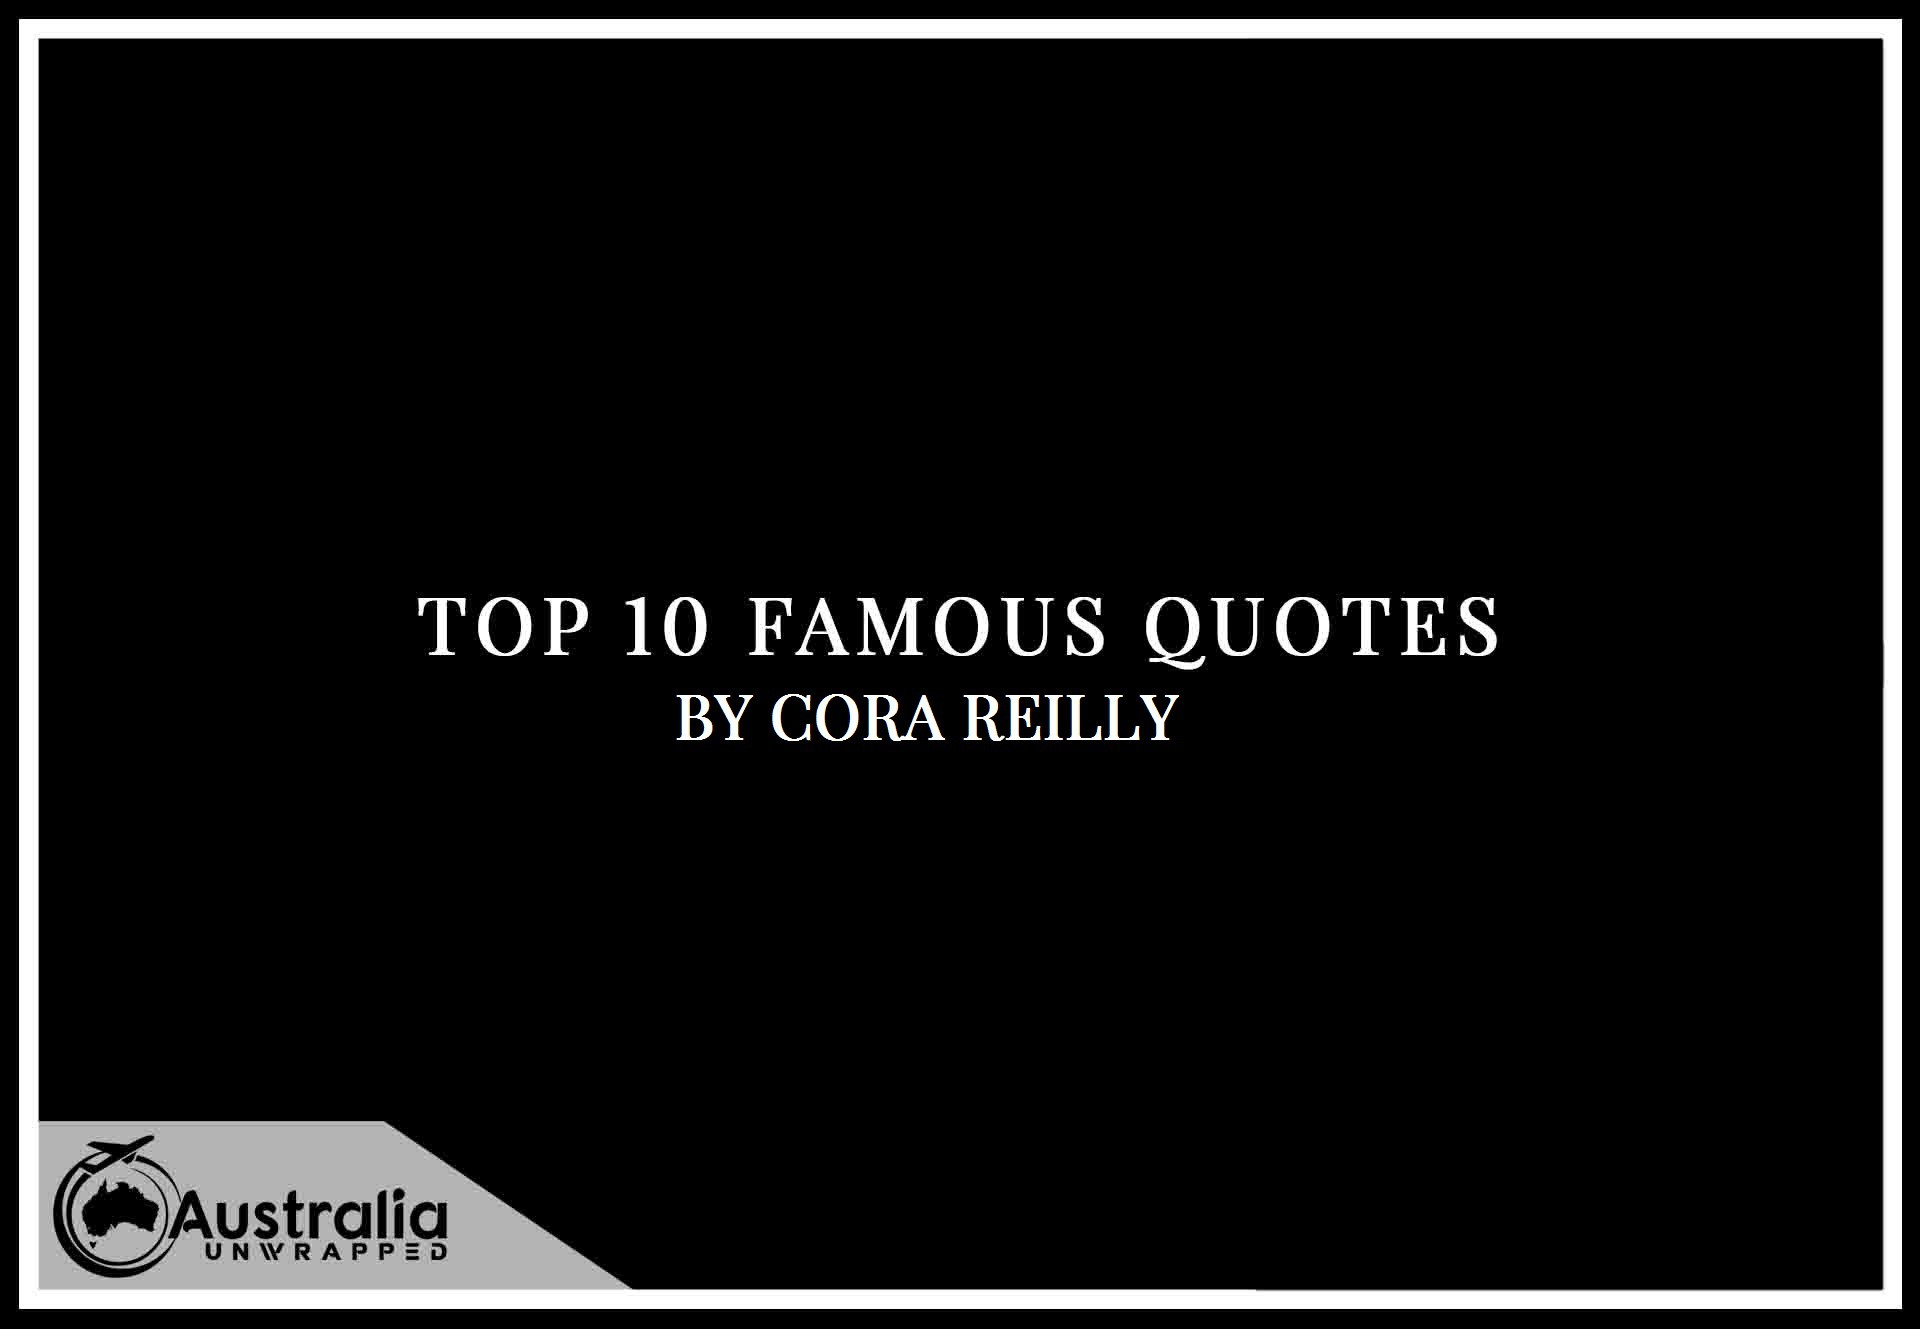 Cora Reilly's Top 10 Popular and Famous Quotes